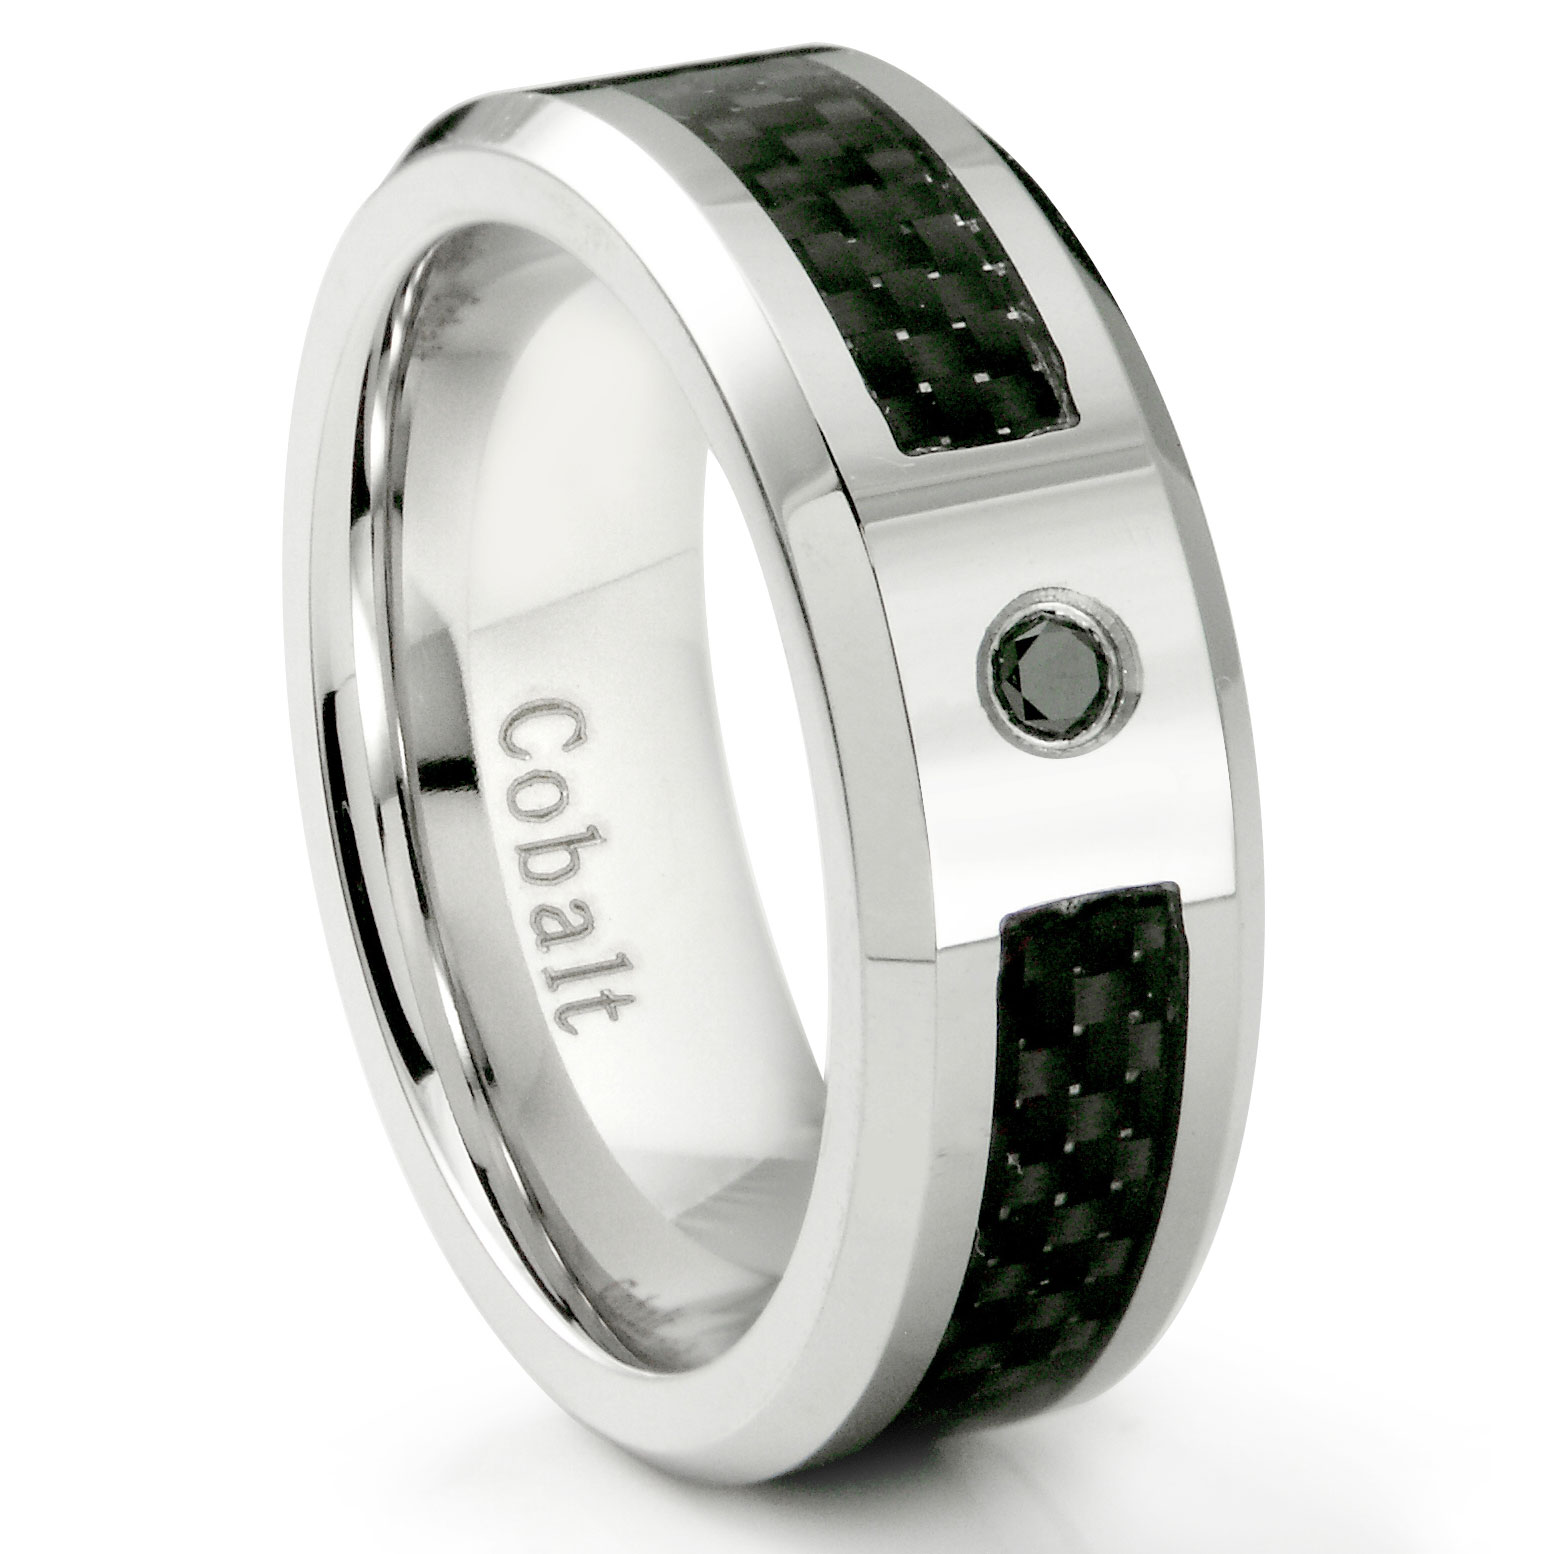 tungsten diamond rings carbide comfort bevel band beckers fit carbon wedding edge with fiber jewelers black inlay